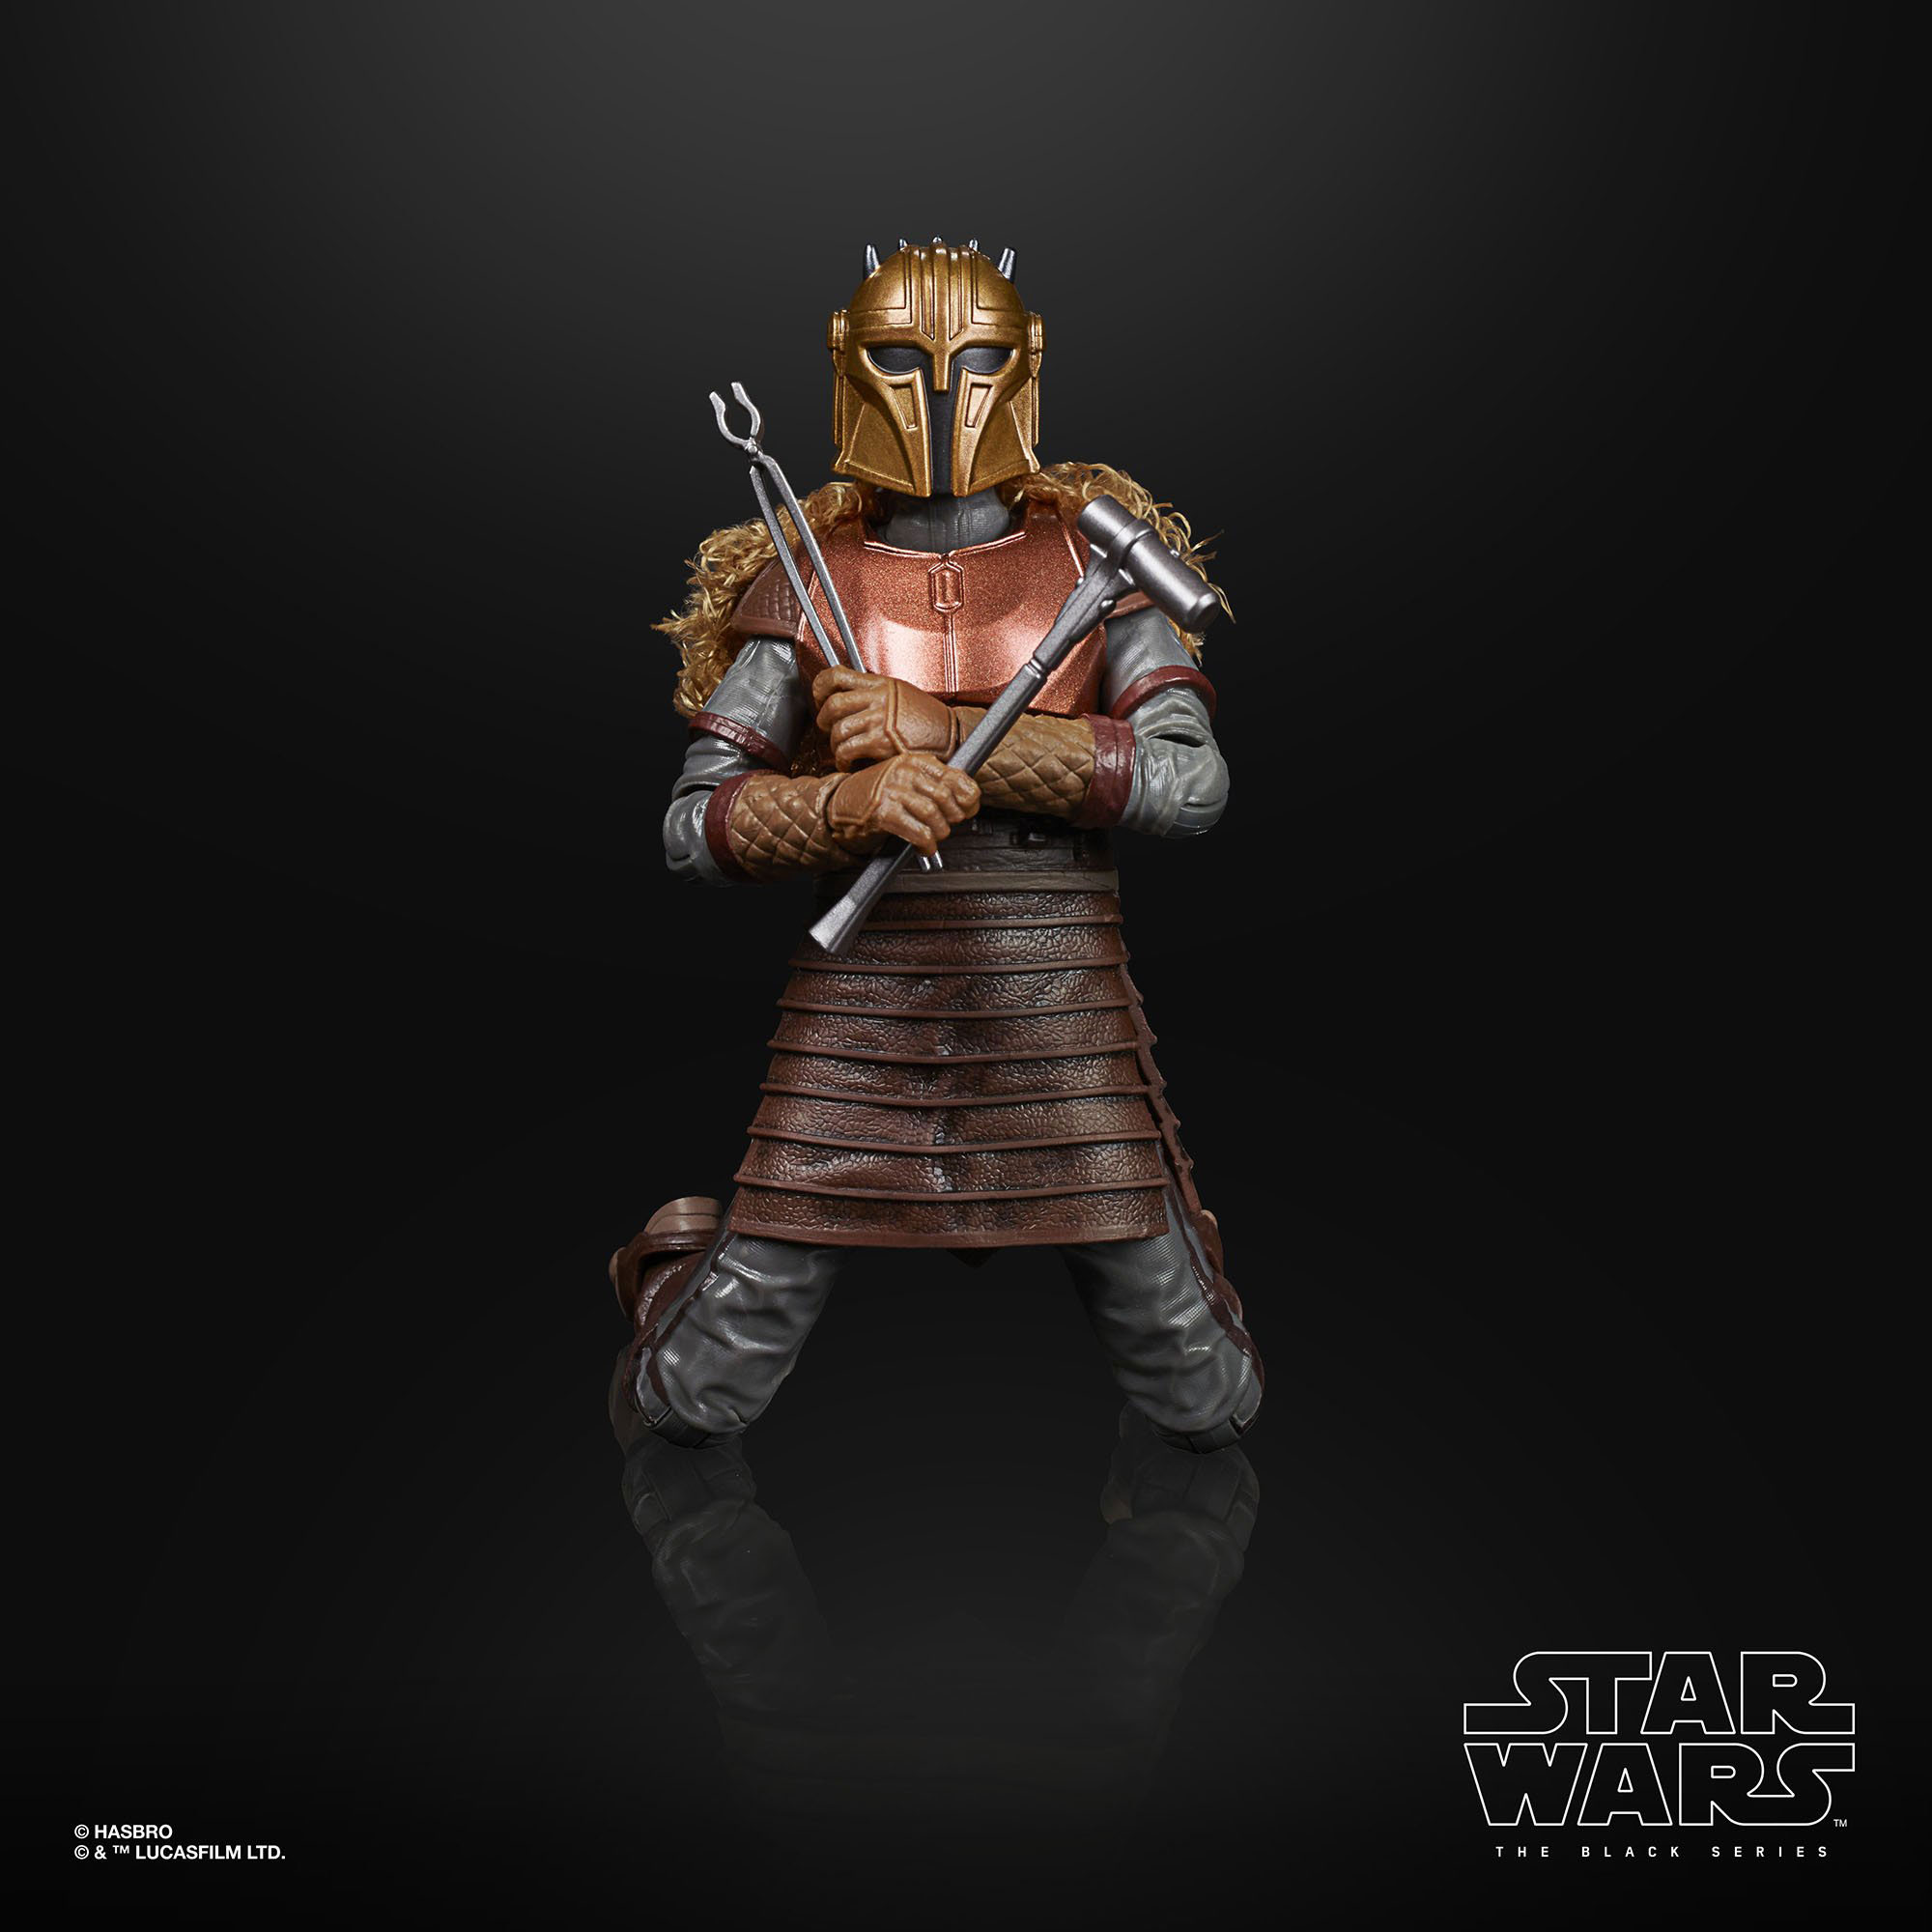 star-wars-black-series-the-armorer-mandalorian-action-figure-1